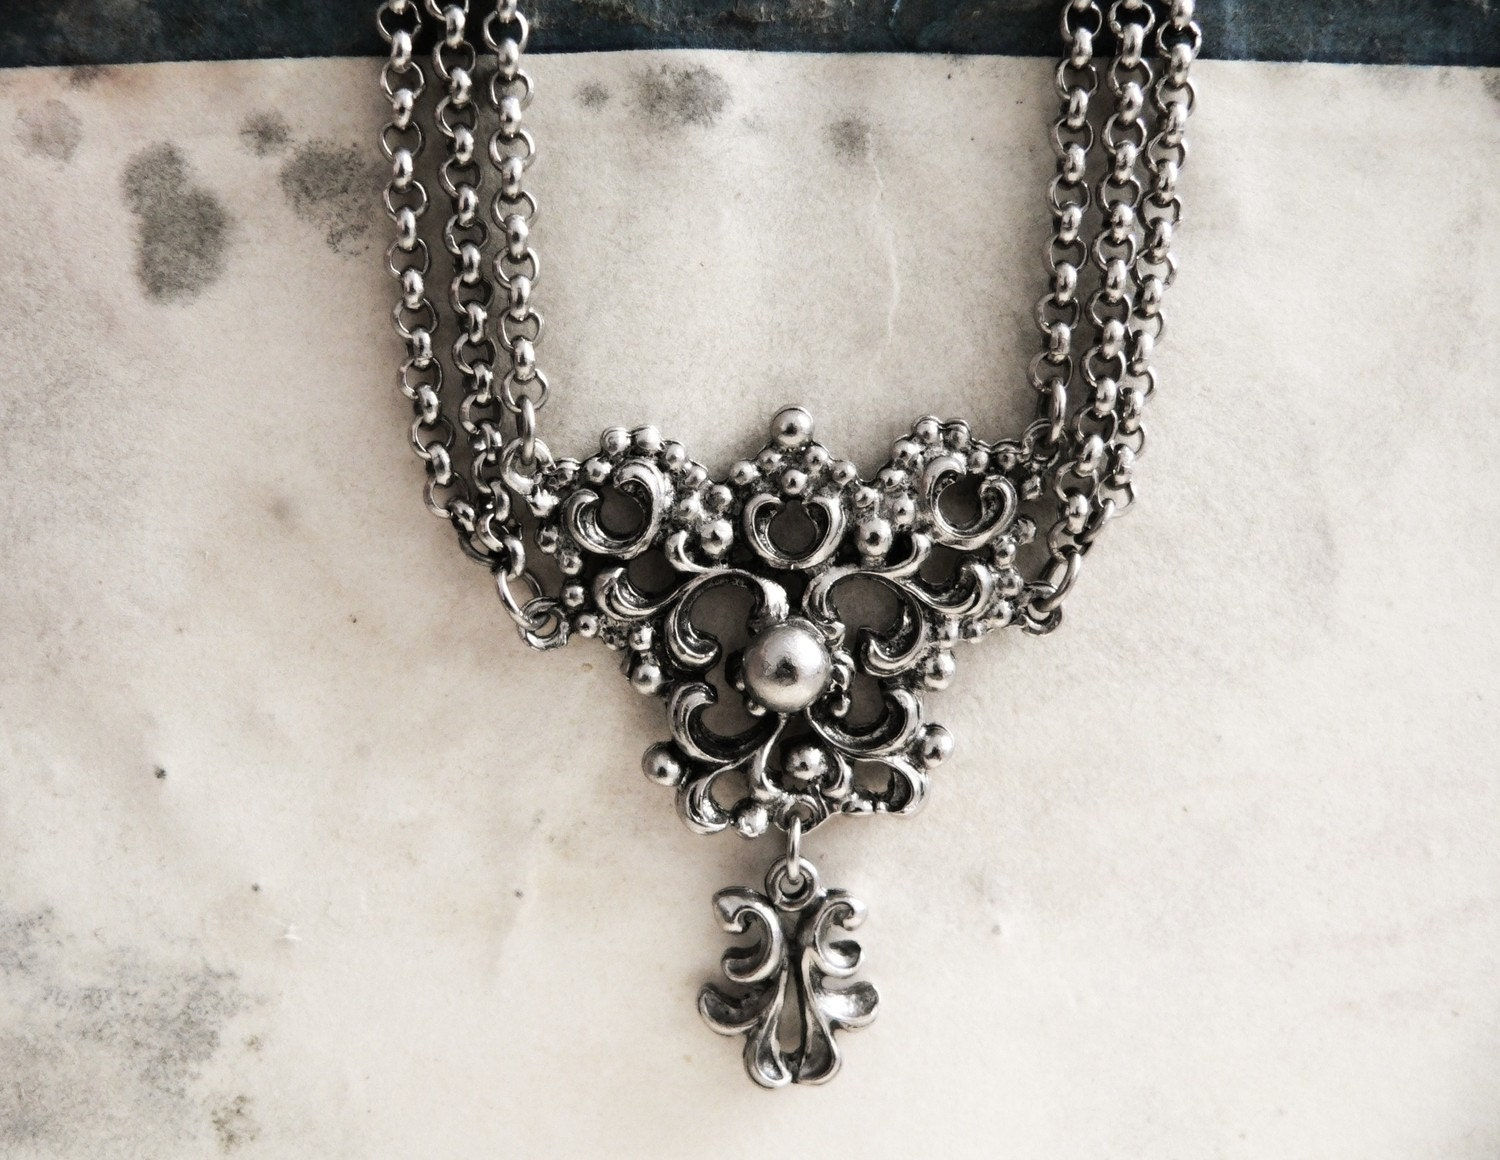 Vintage 1960s Silver Ornate Victorian Necklace - mablum